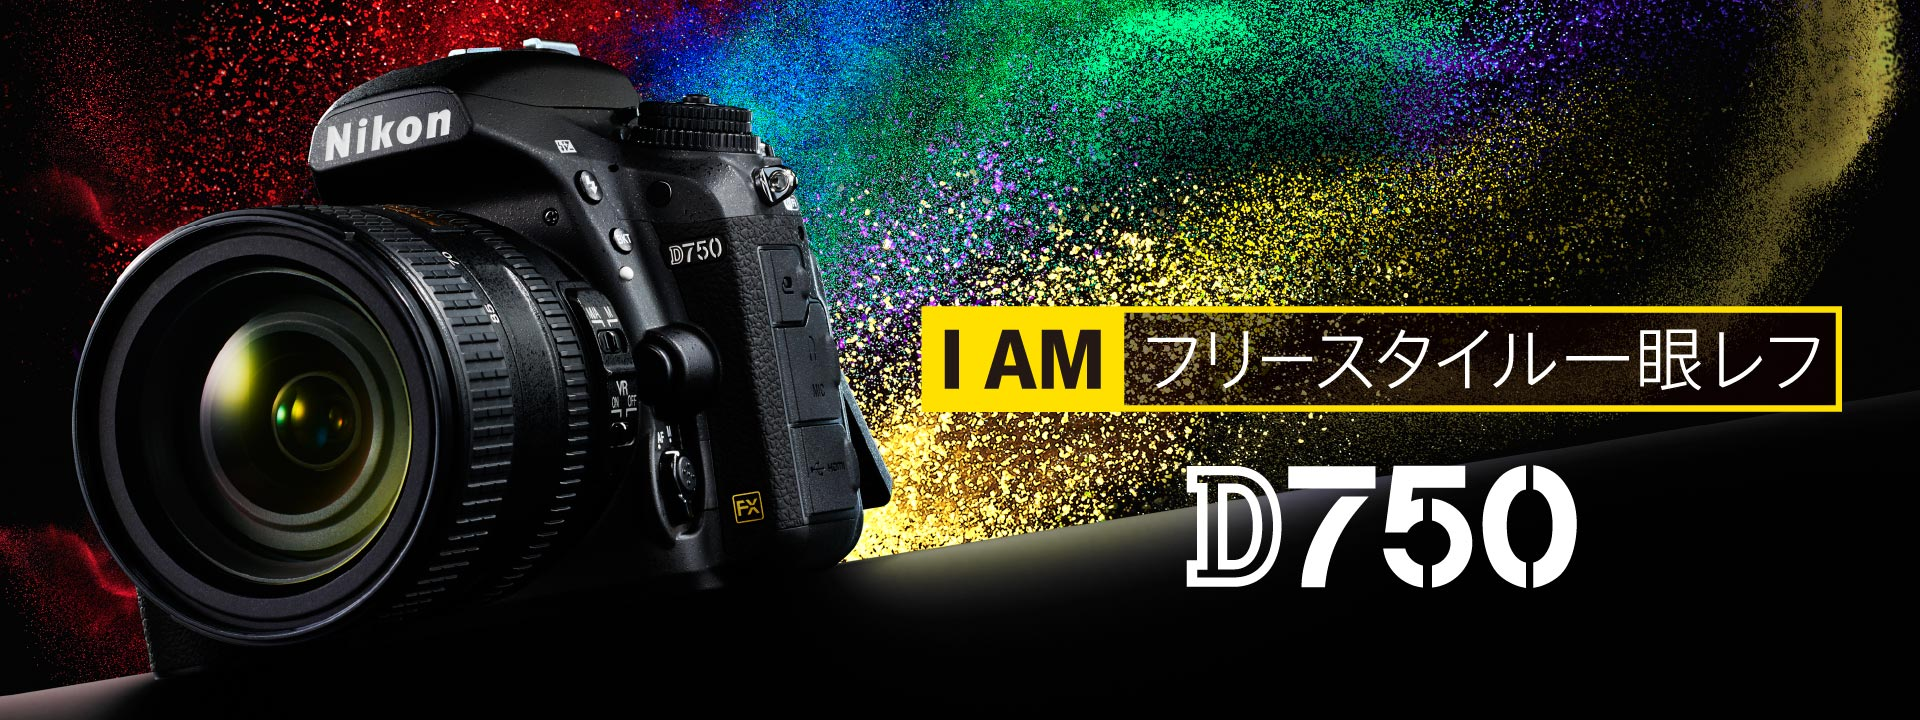 http://www.nikon-image.com/products/slr/lineup/d750/img/index/main_01.jpg